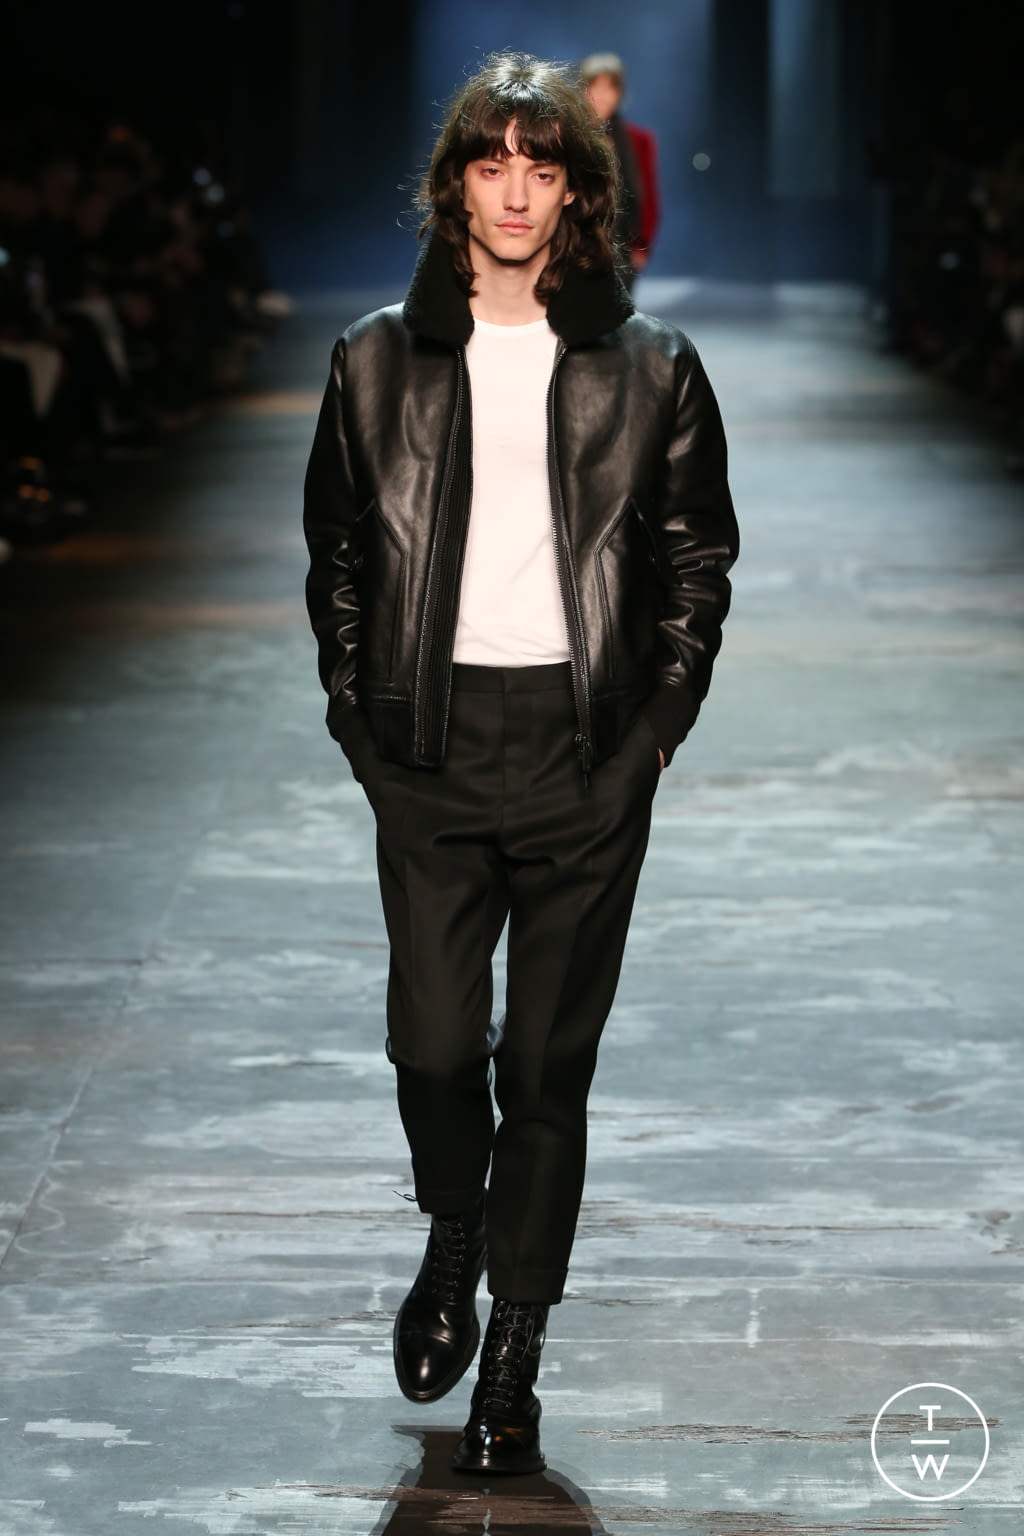 Fashion Week Paris Fall/Winter 2017 look 21 from the Berluti collection 男装